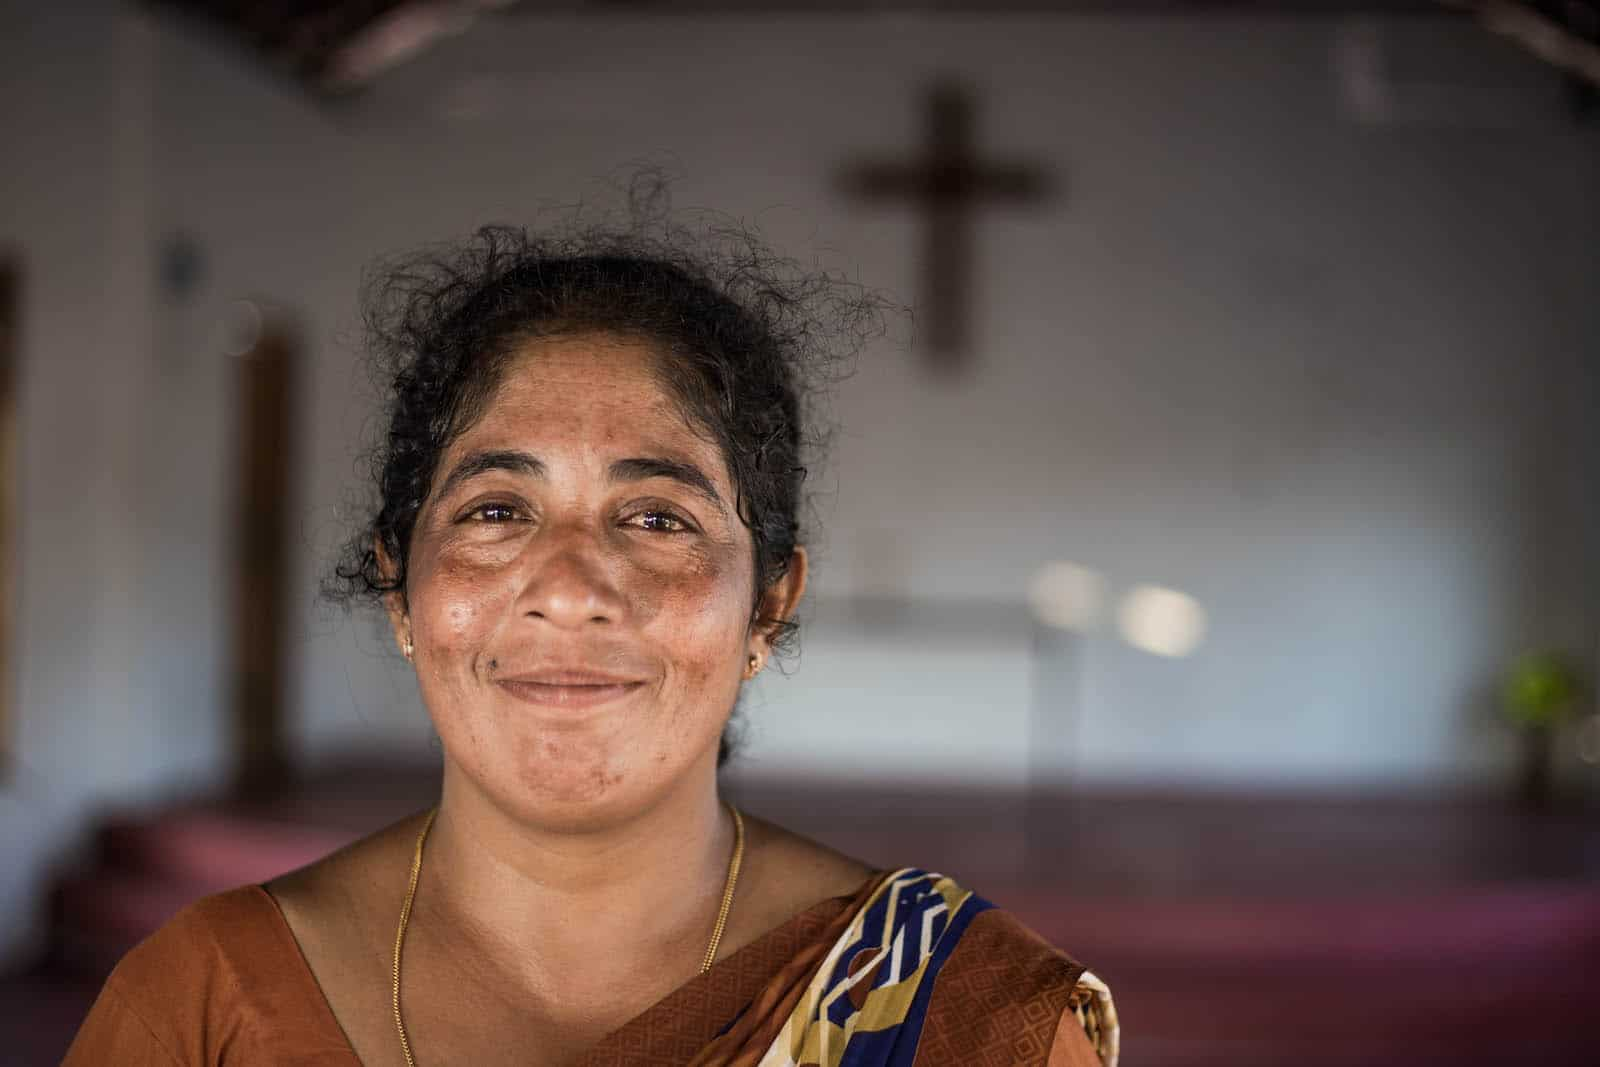 A woman who fights maternal suicide wears a brown dress standing in a church.